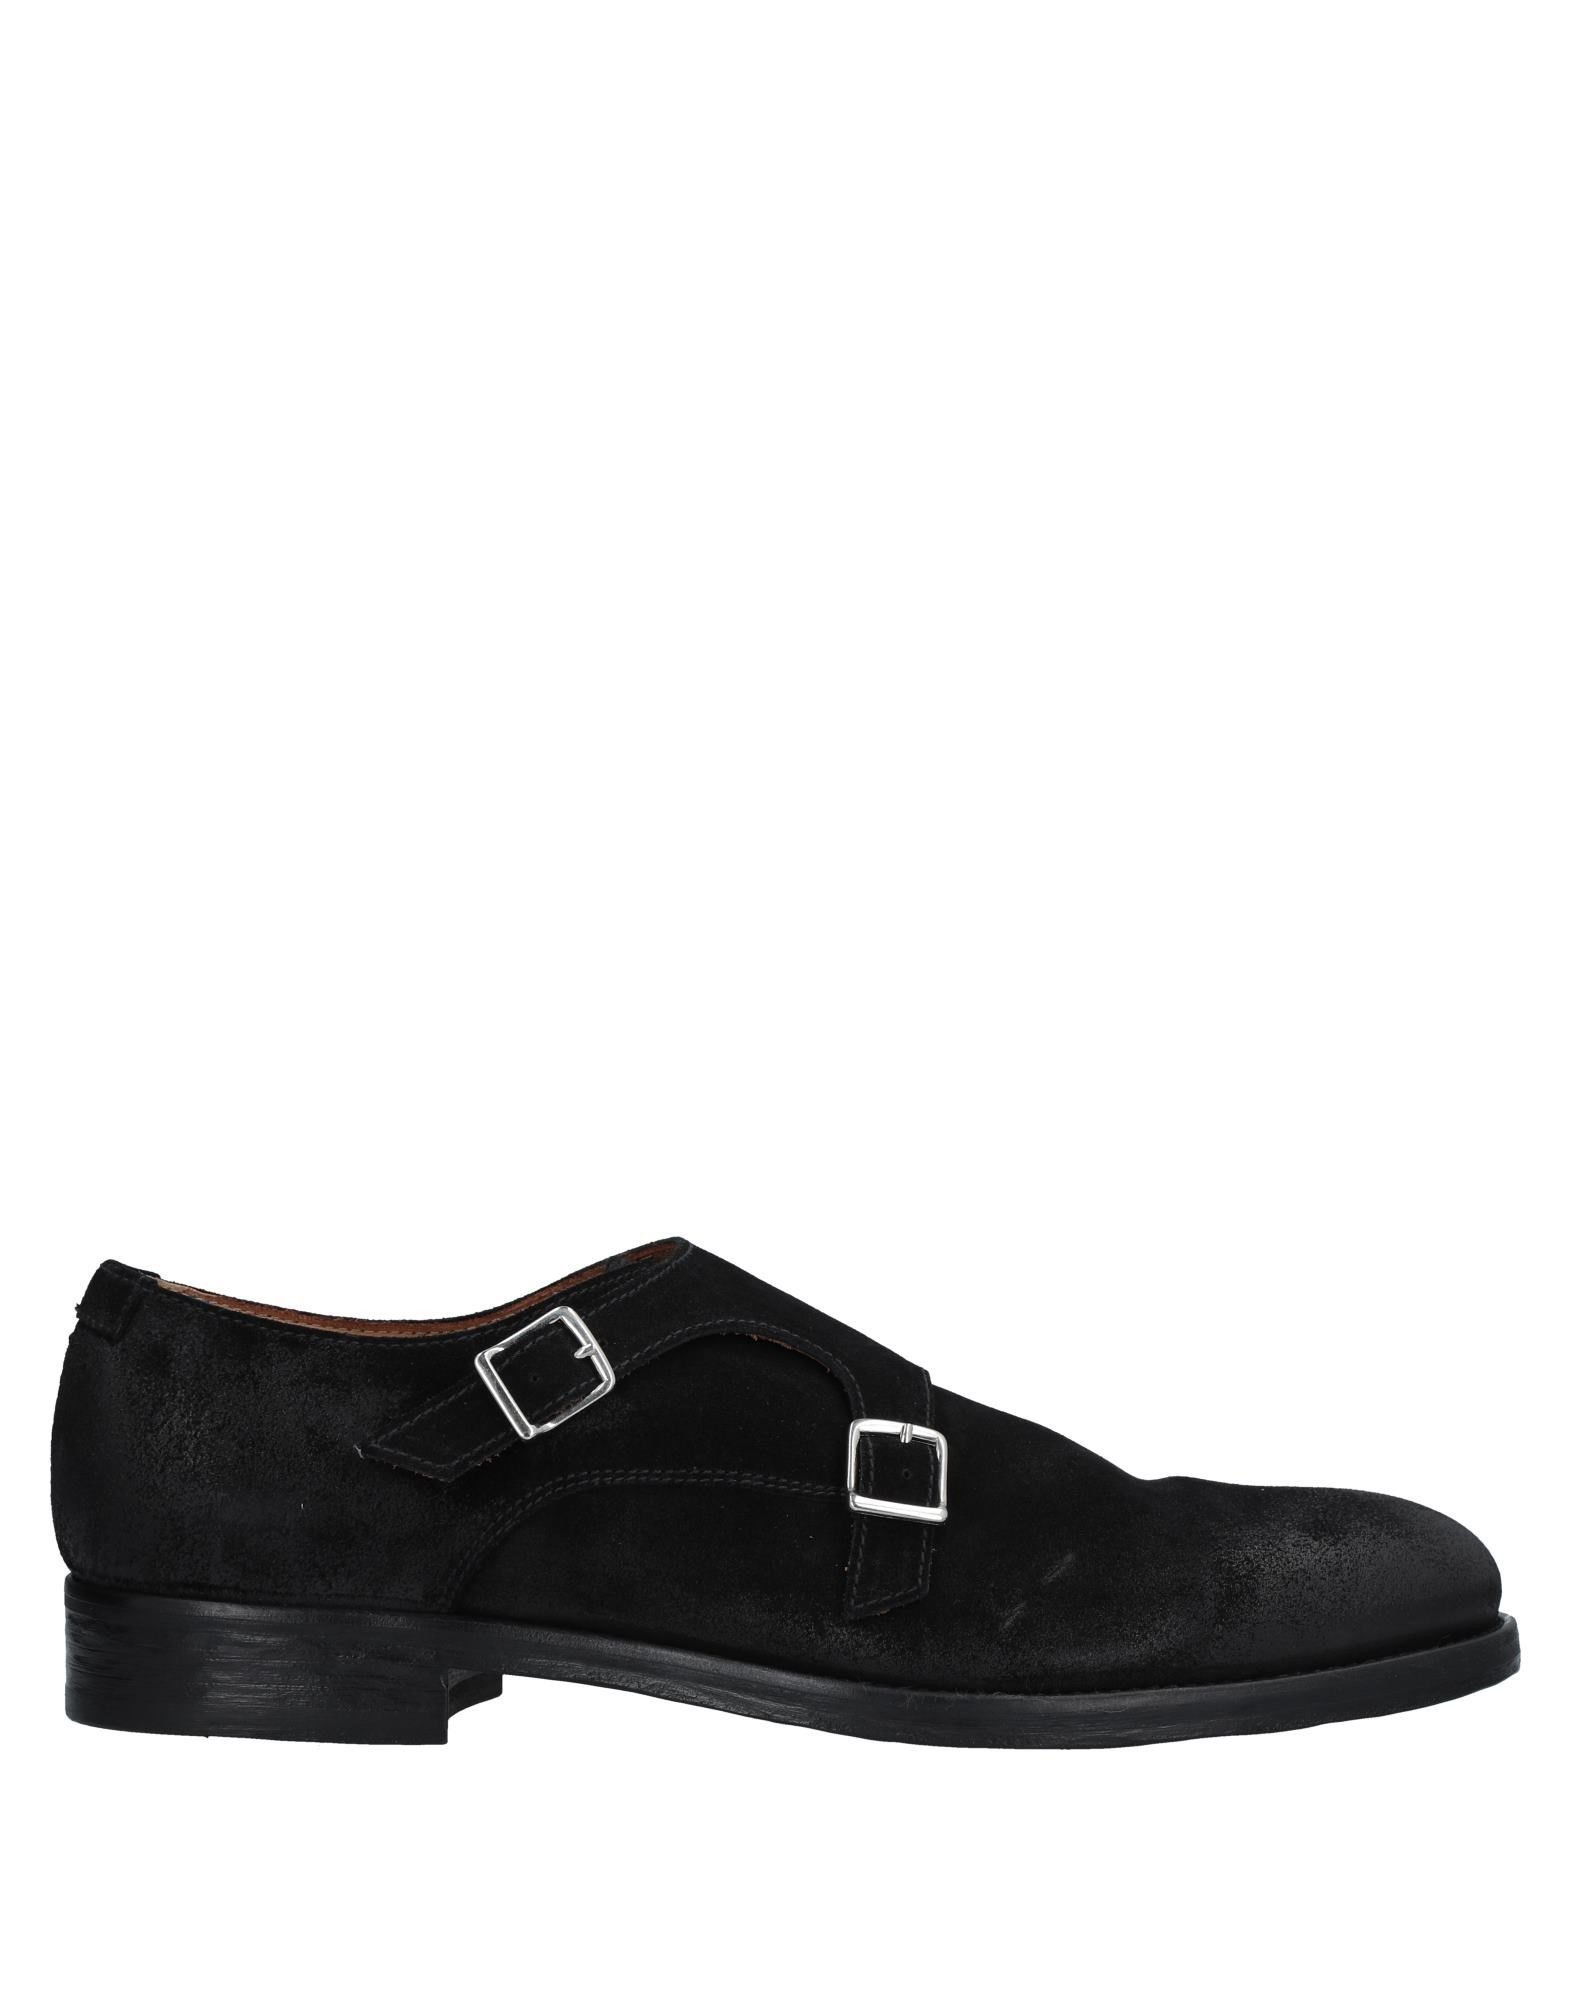 Doucal's Loafers - Men Doucal's Loafers online on 11530455WF  United Kingdom - 11530455WF on 4dd413